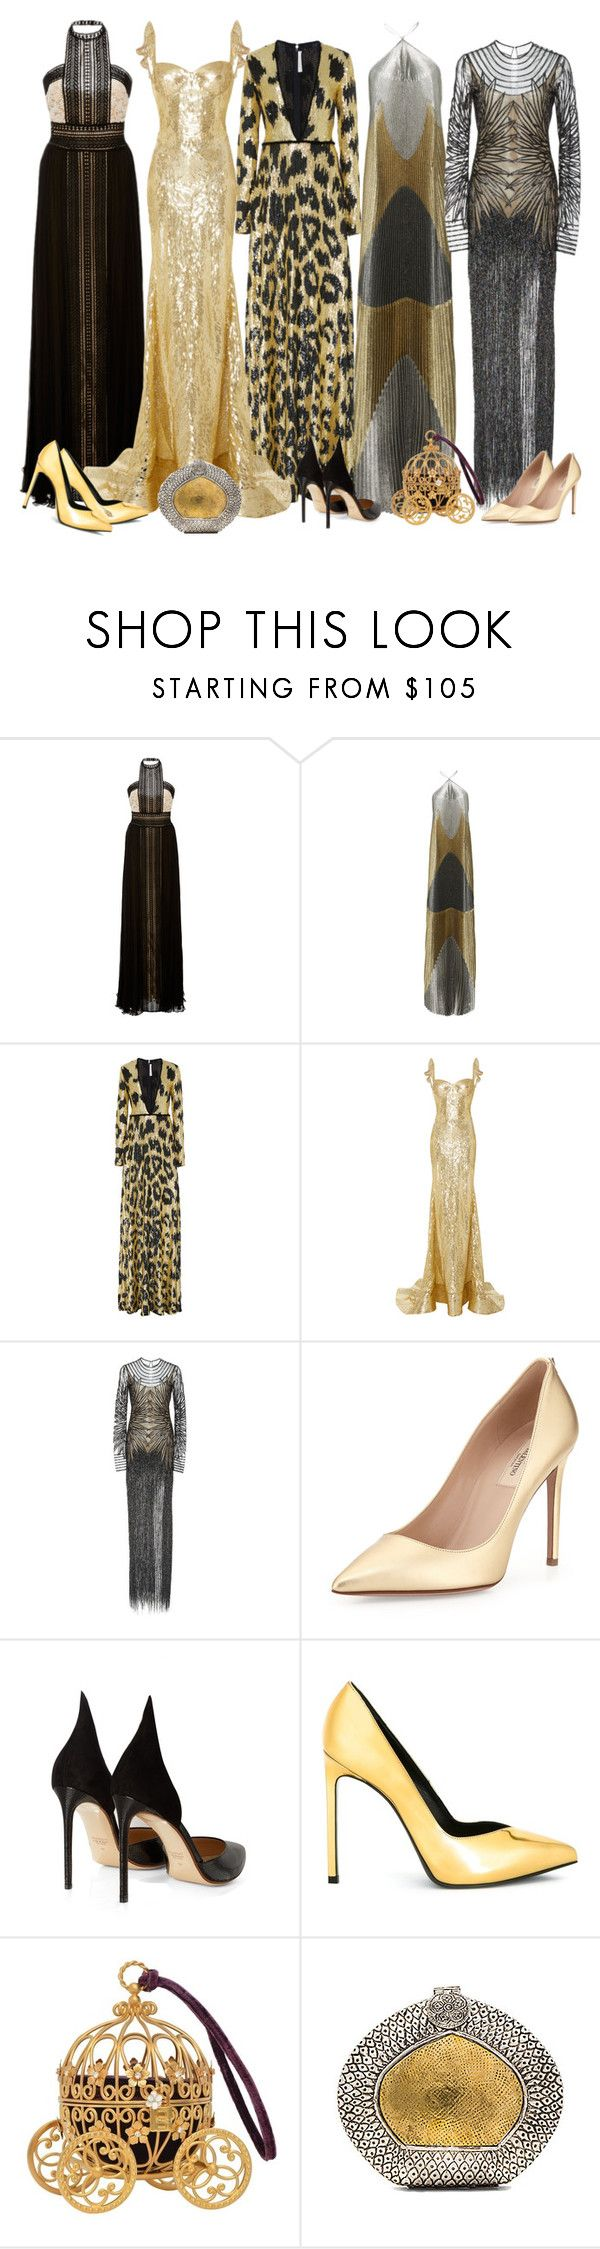 """Naeem Khan Gowns"" by cherieaustin ❤ liked on Polyvore featuring Naeem Khan, Valentino, Francesco Russo, Yves Saint Laurent and From St Xavier"